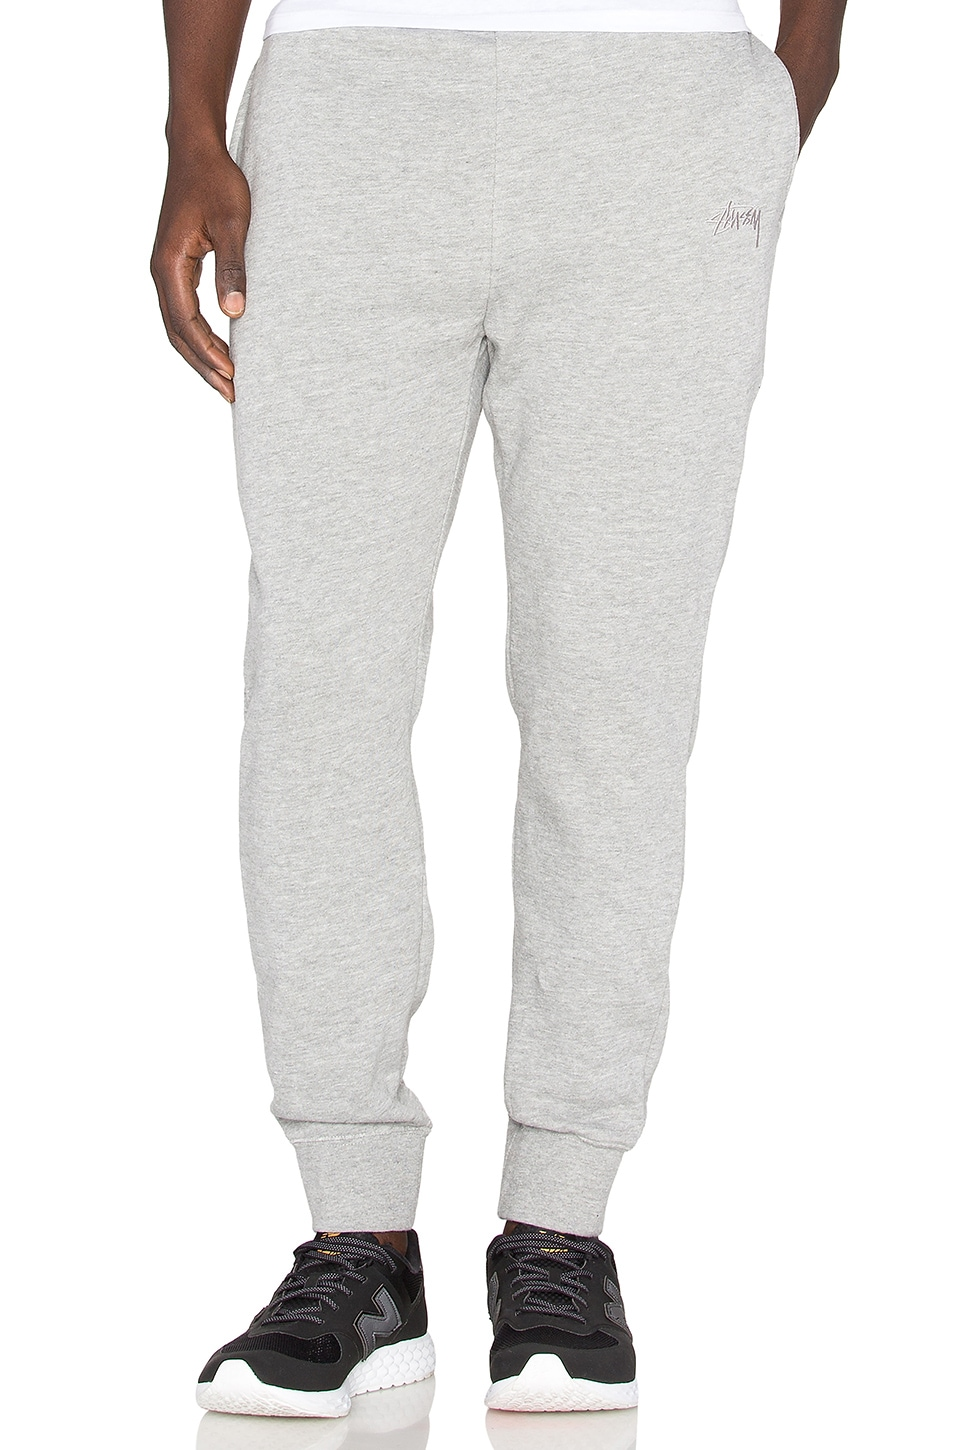 6b014abb7b Stussy Tonal Stock Fleece Pant in Grey Heather | REVOLVE